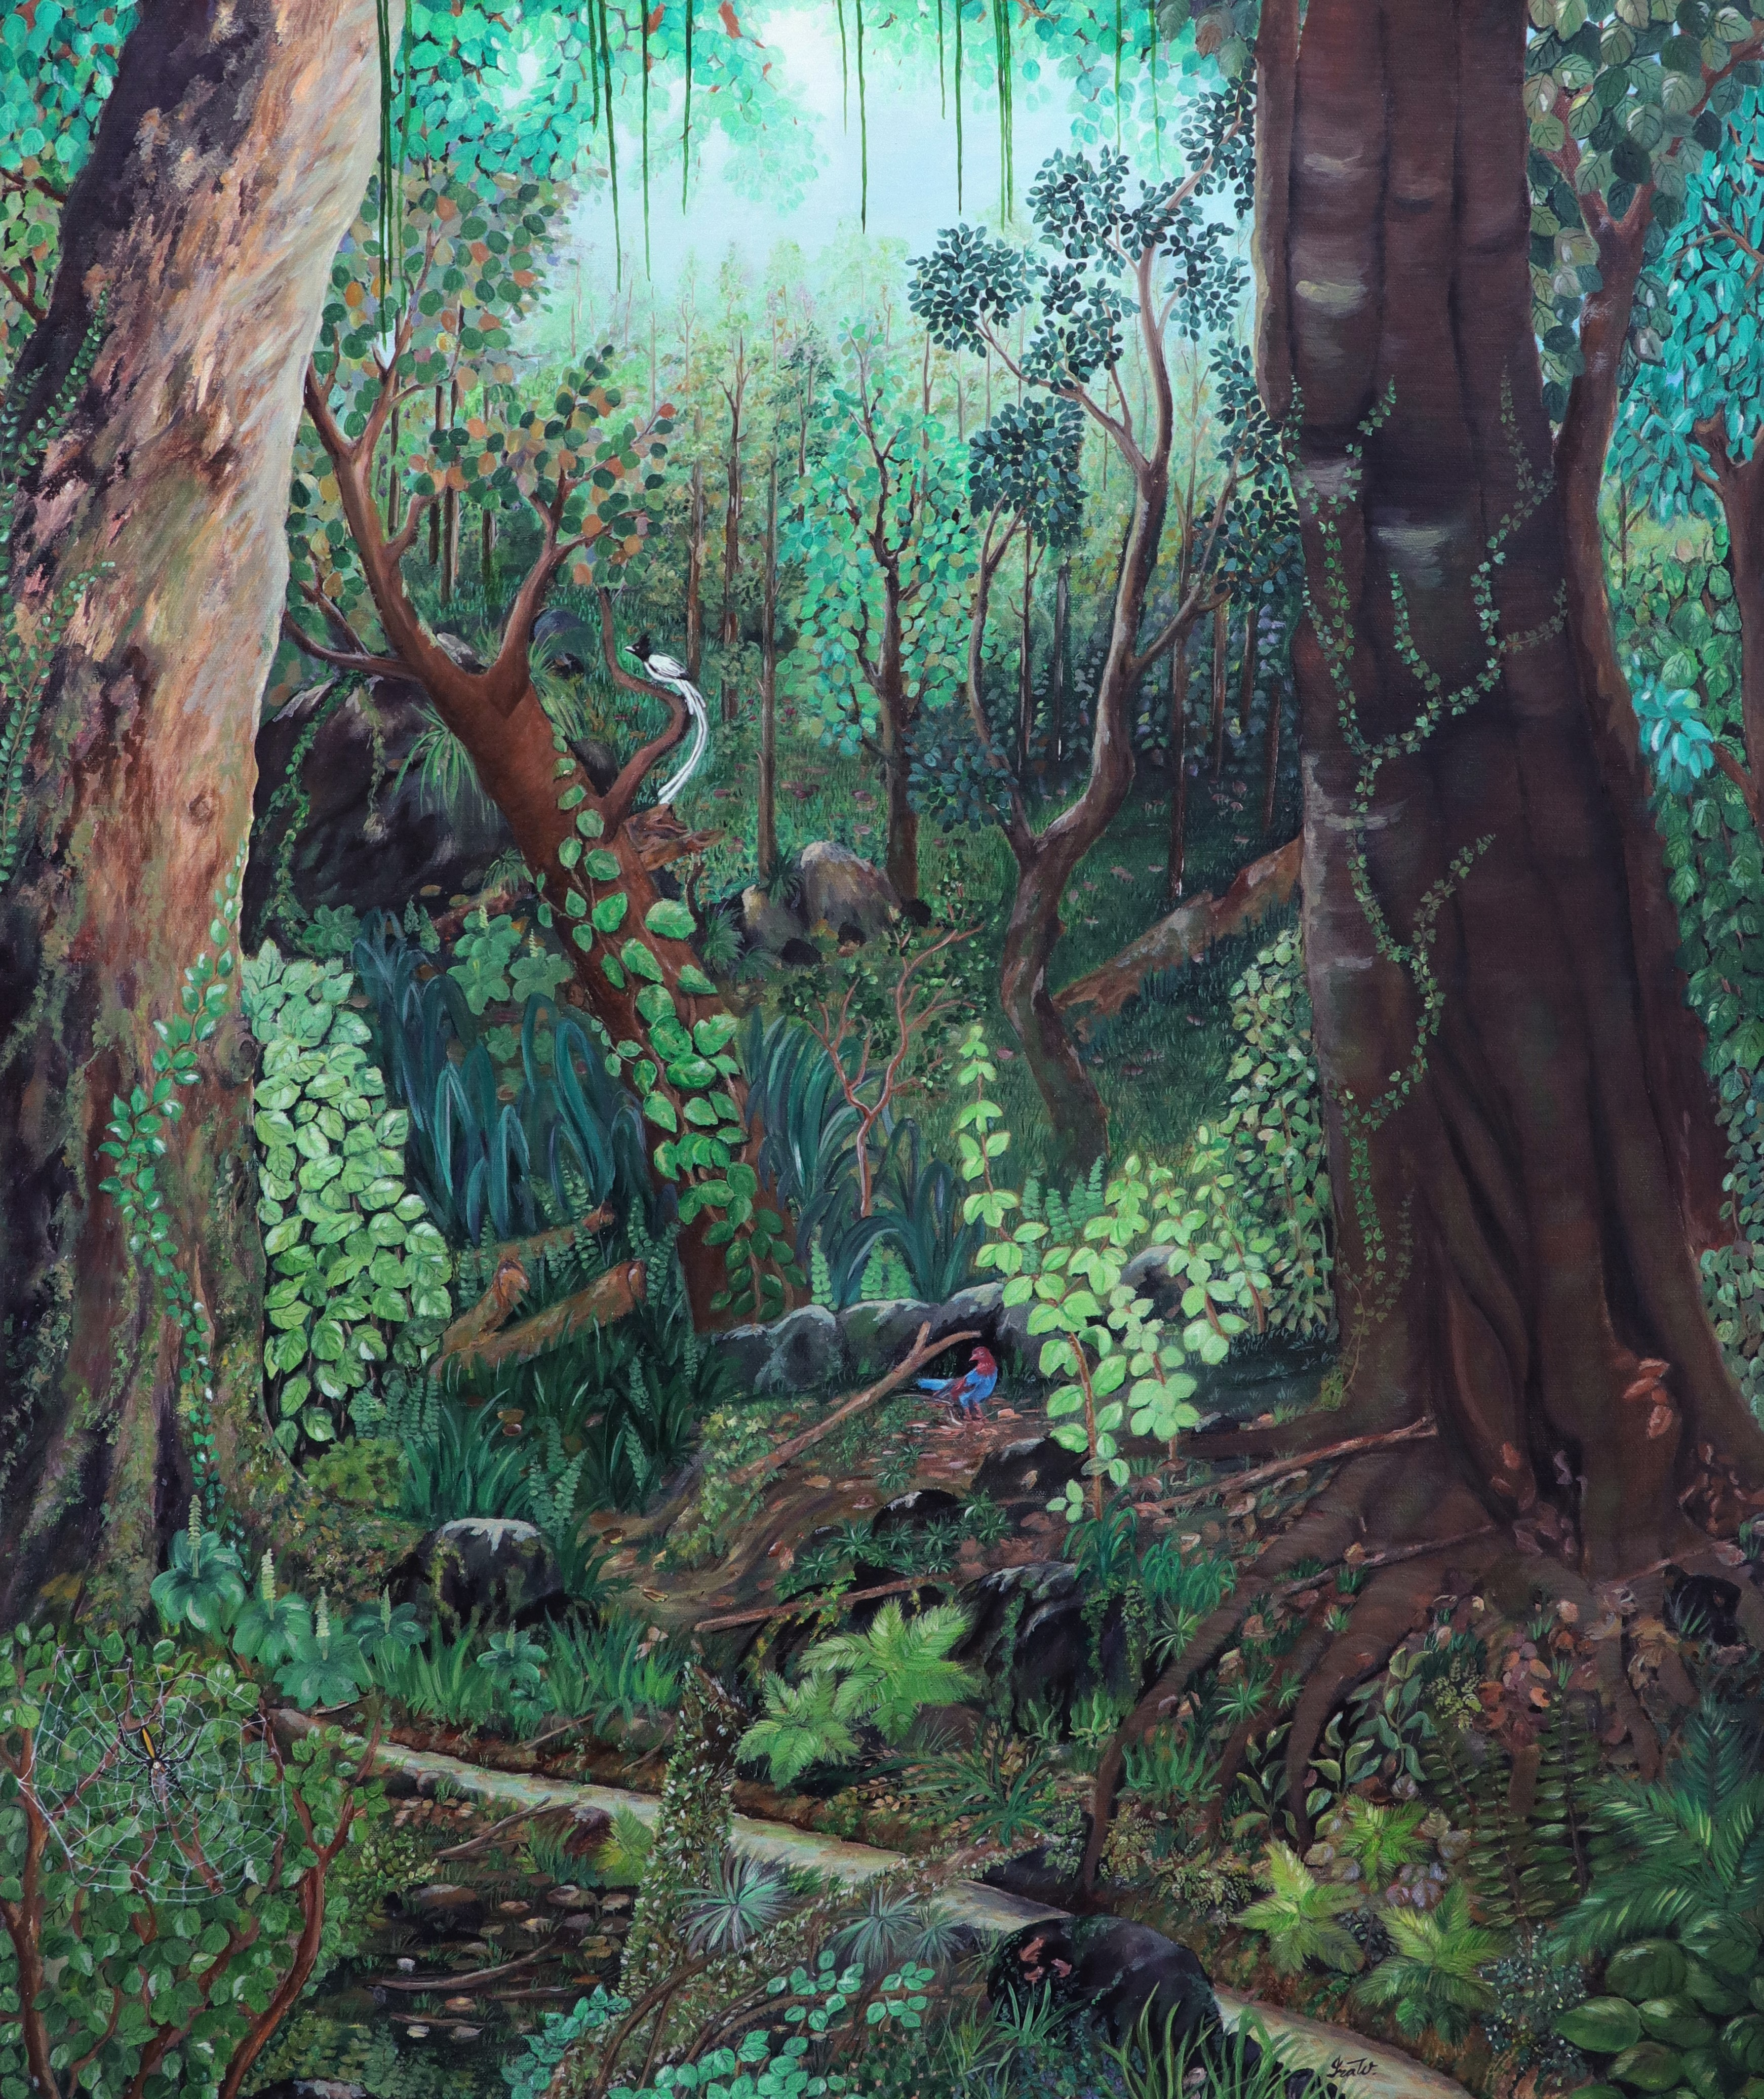 Whispers in the Forest by Iranganie Wickramasinghe